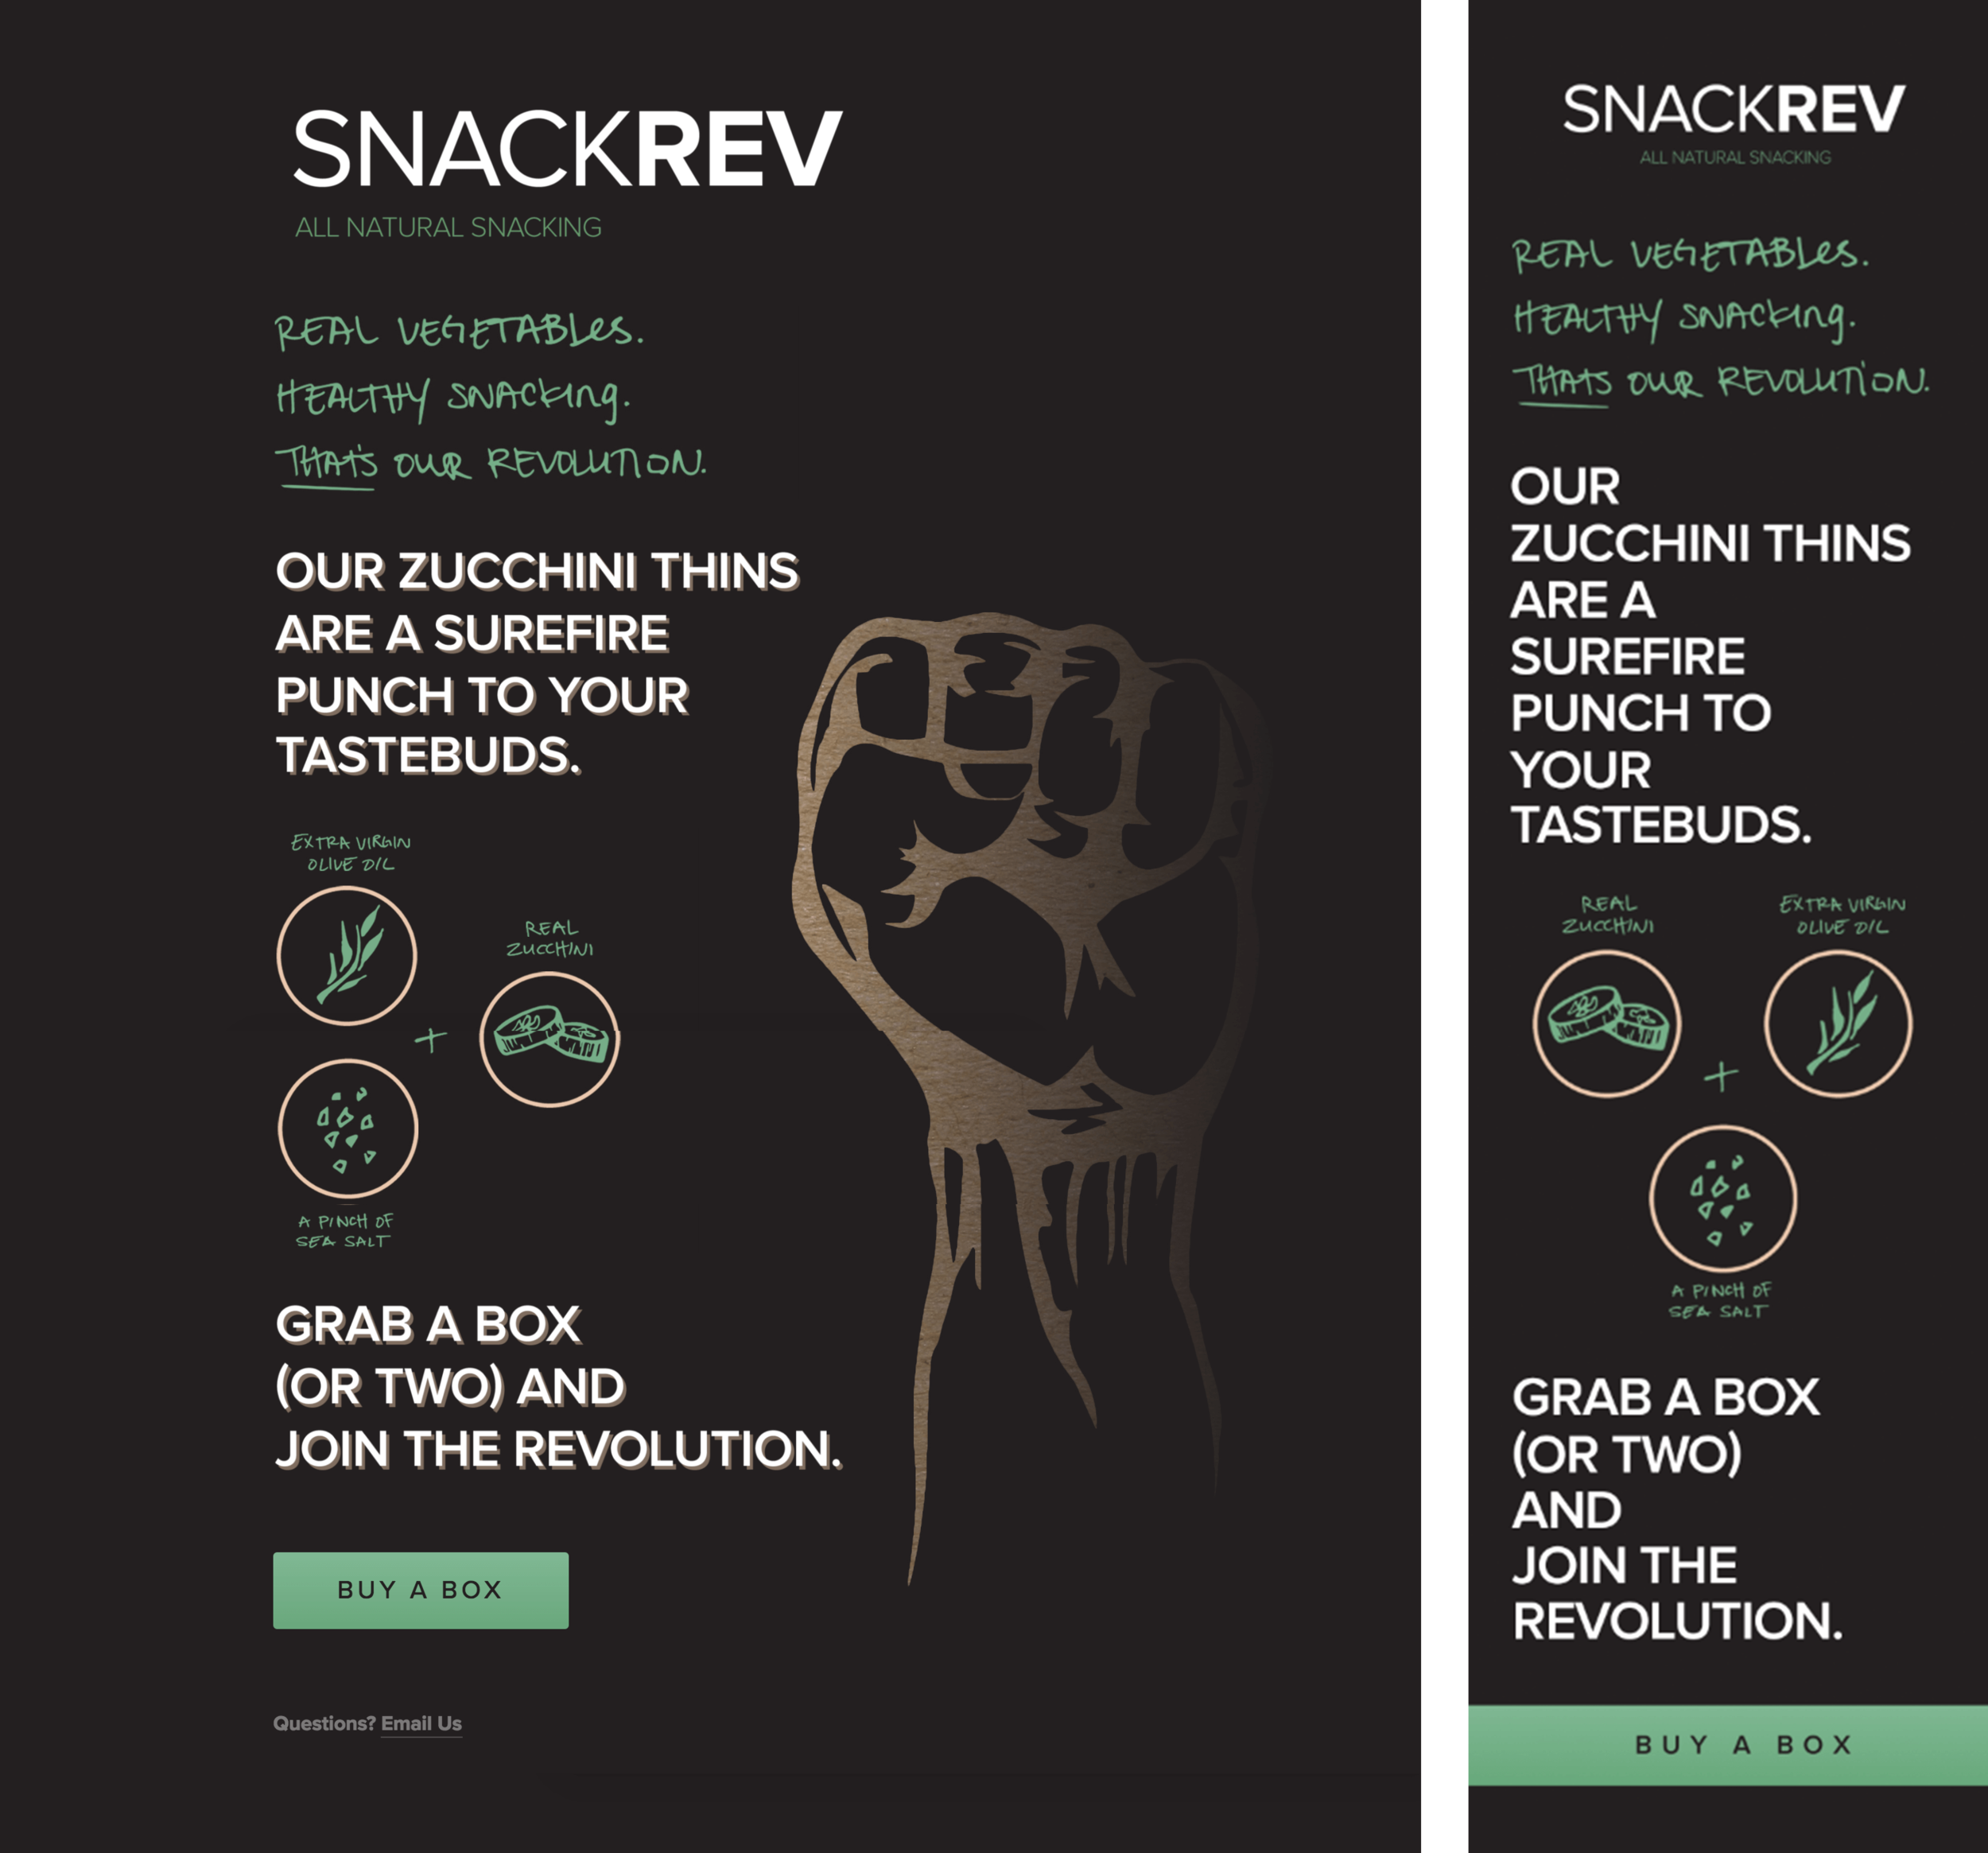 Desktop and mobile screens from the SnackRev zucchini chip landing page.